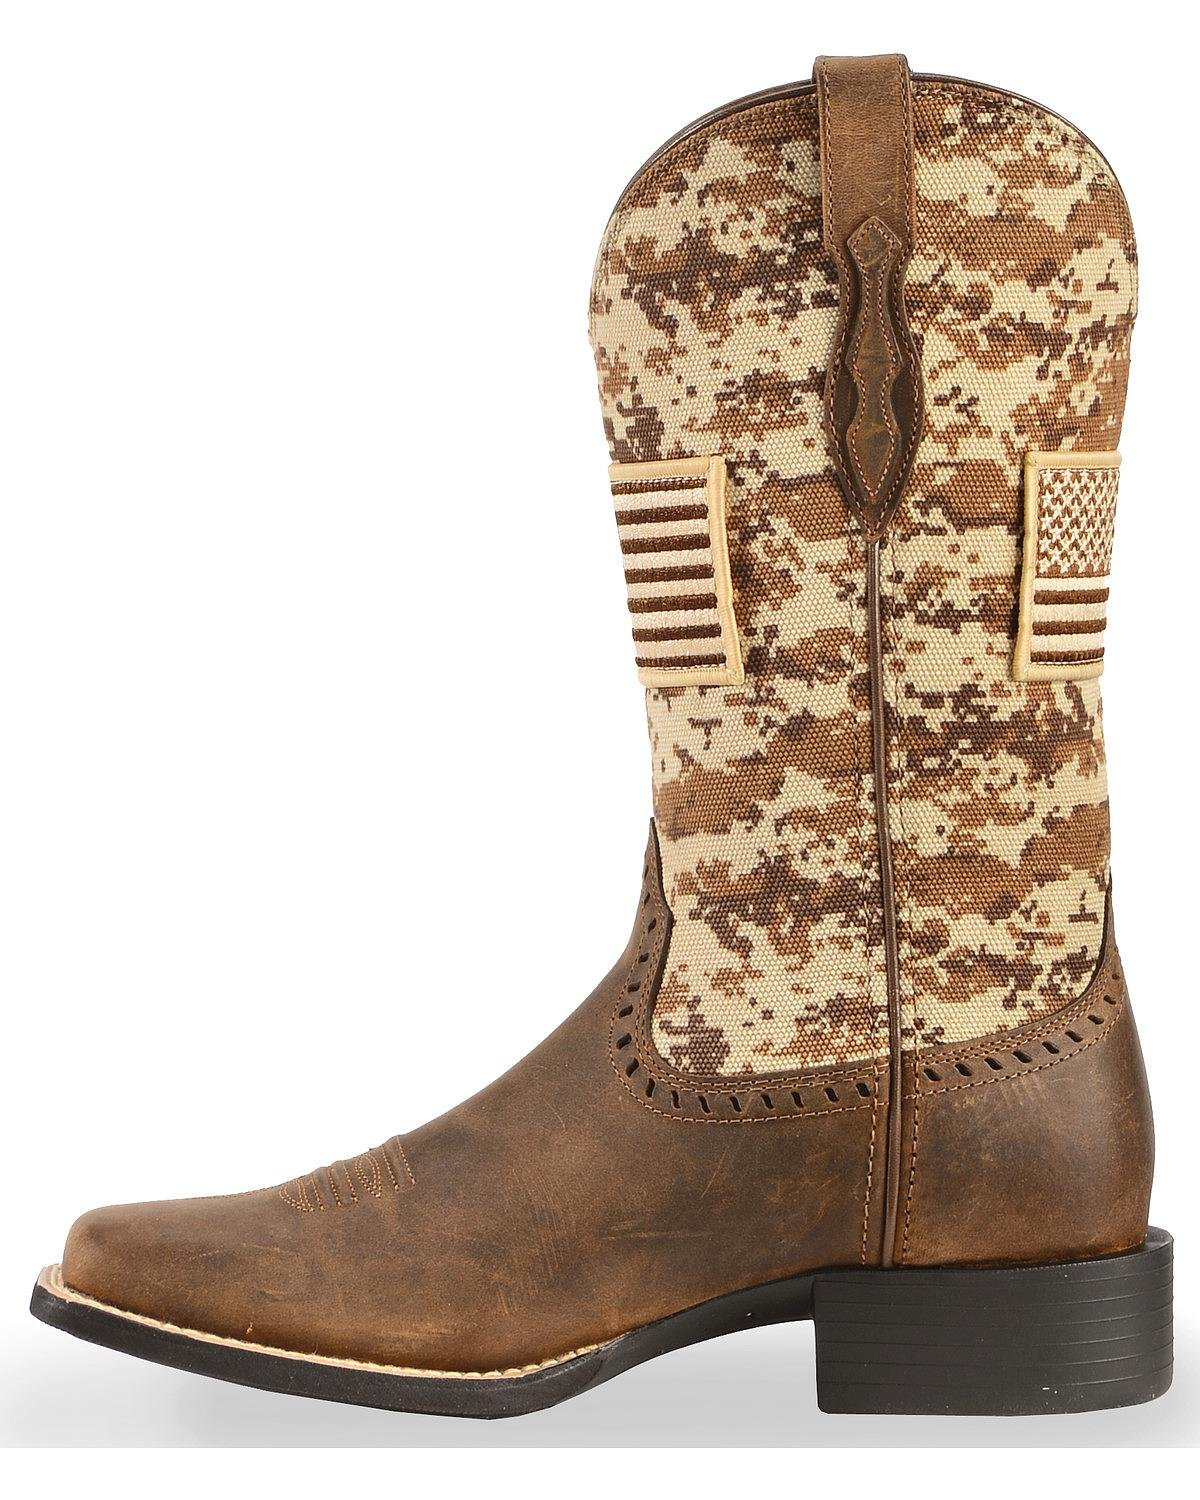 Ariat Women's Round up Patriot Boot B079BTJLYD 7.5 M US|Distressed Brown